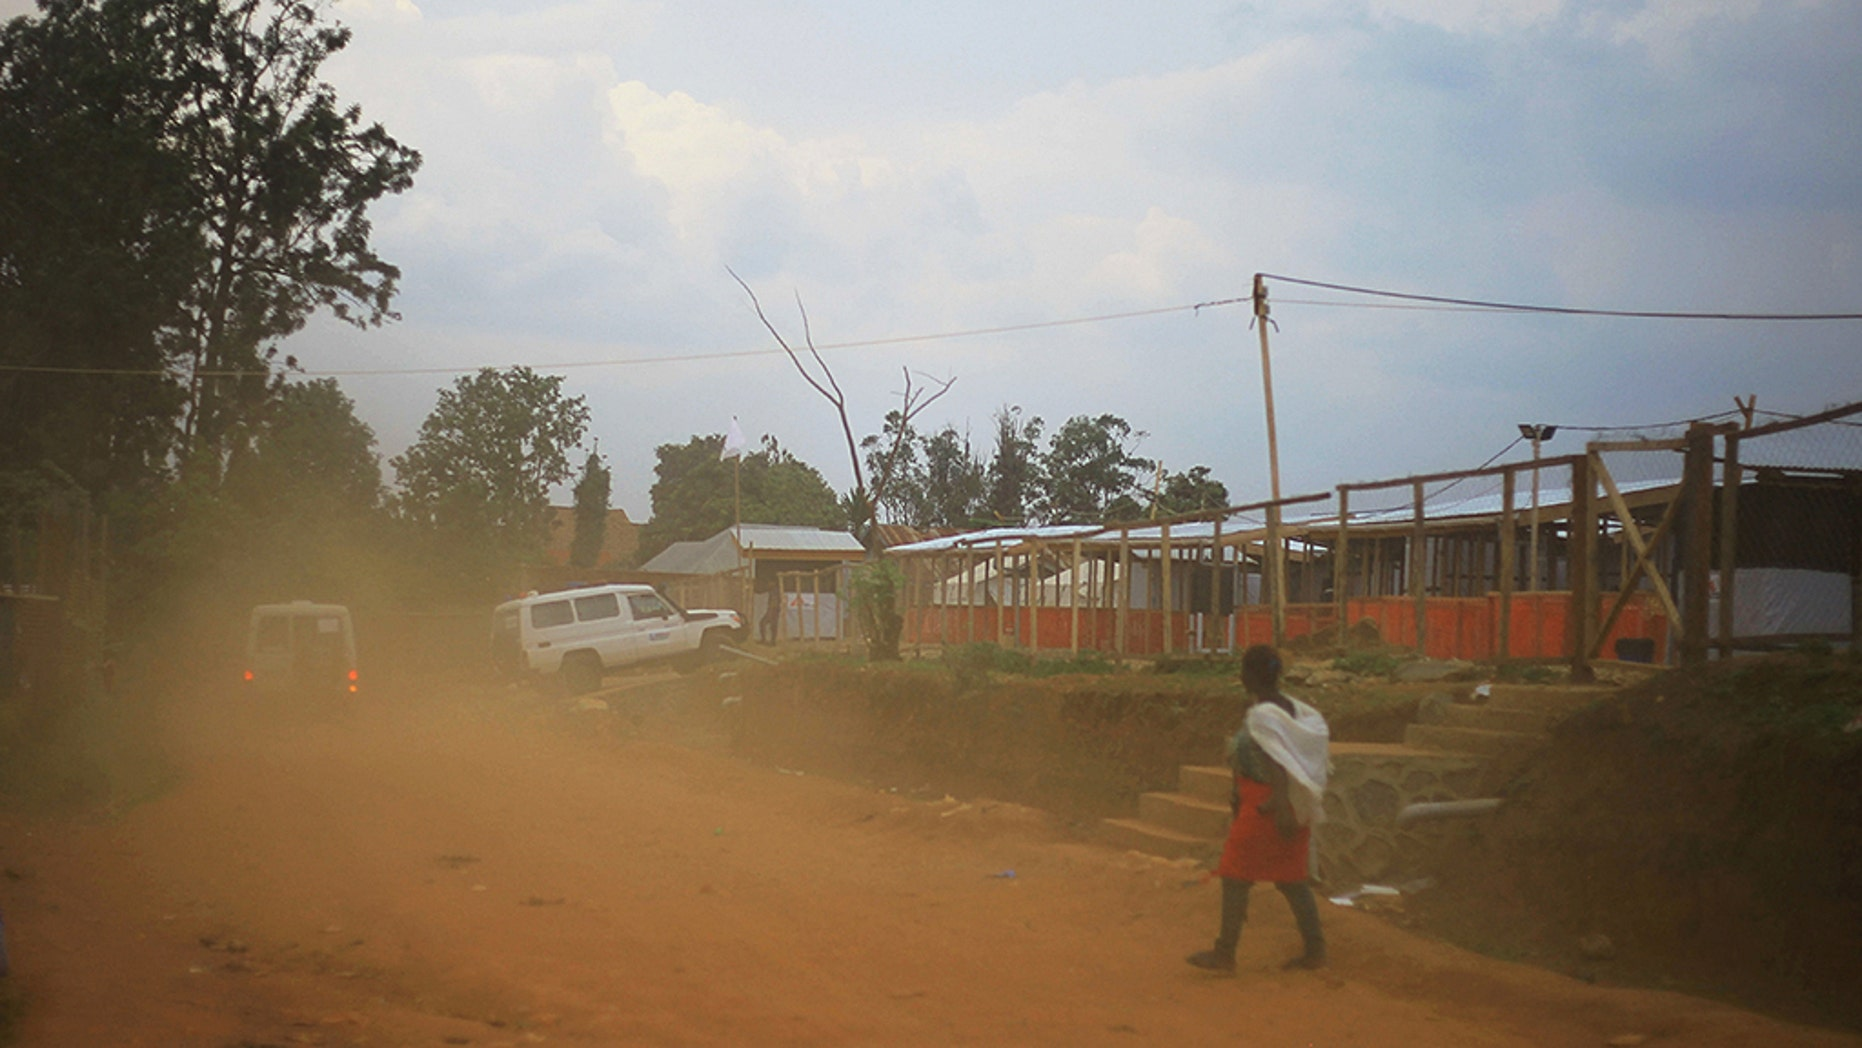 Ambulances enter an attacked Ebola treatment center while protesters protest because they have been excluded from the presidential elections in Beni, Democratic Republic of the Congo.